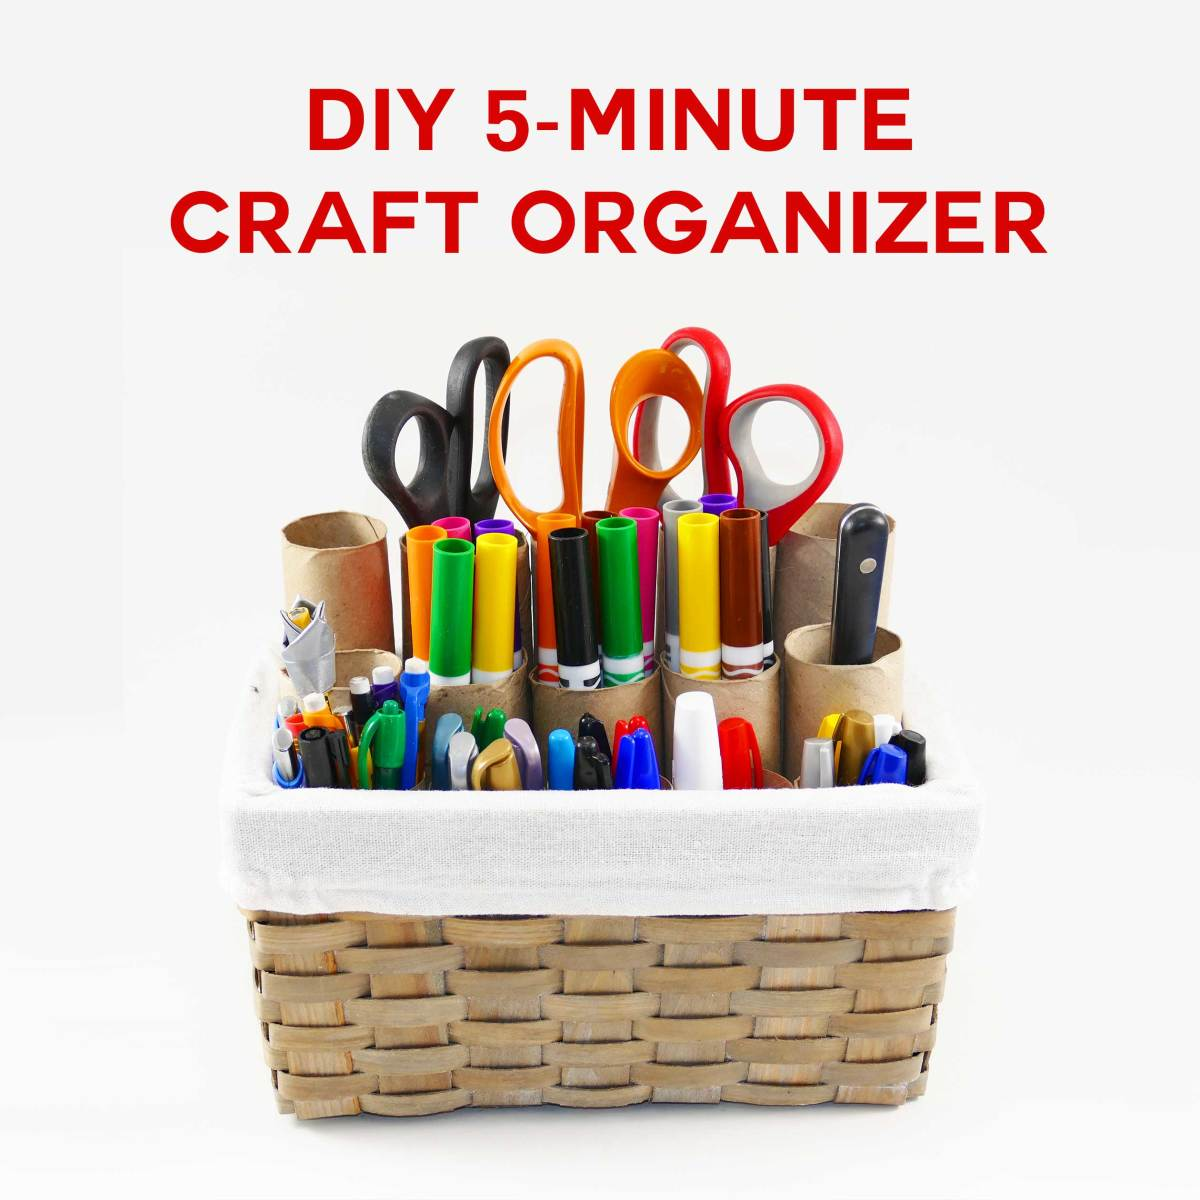 The easiest ever tool organizer. You can literally make this in 5 minutes